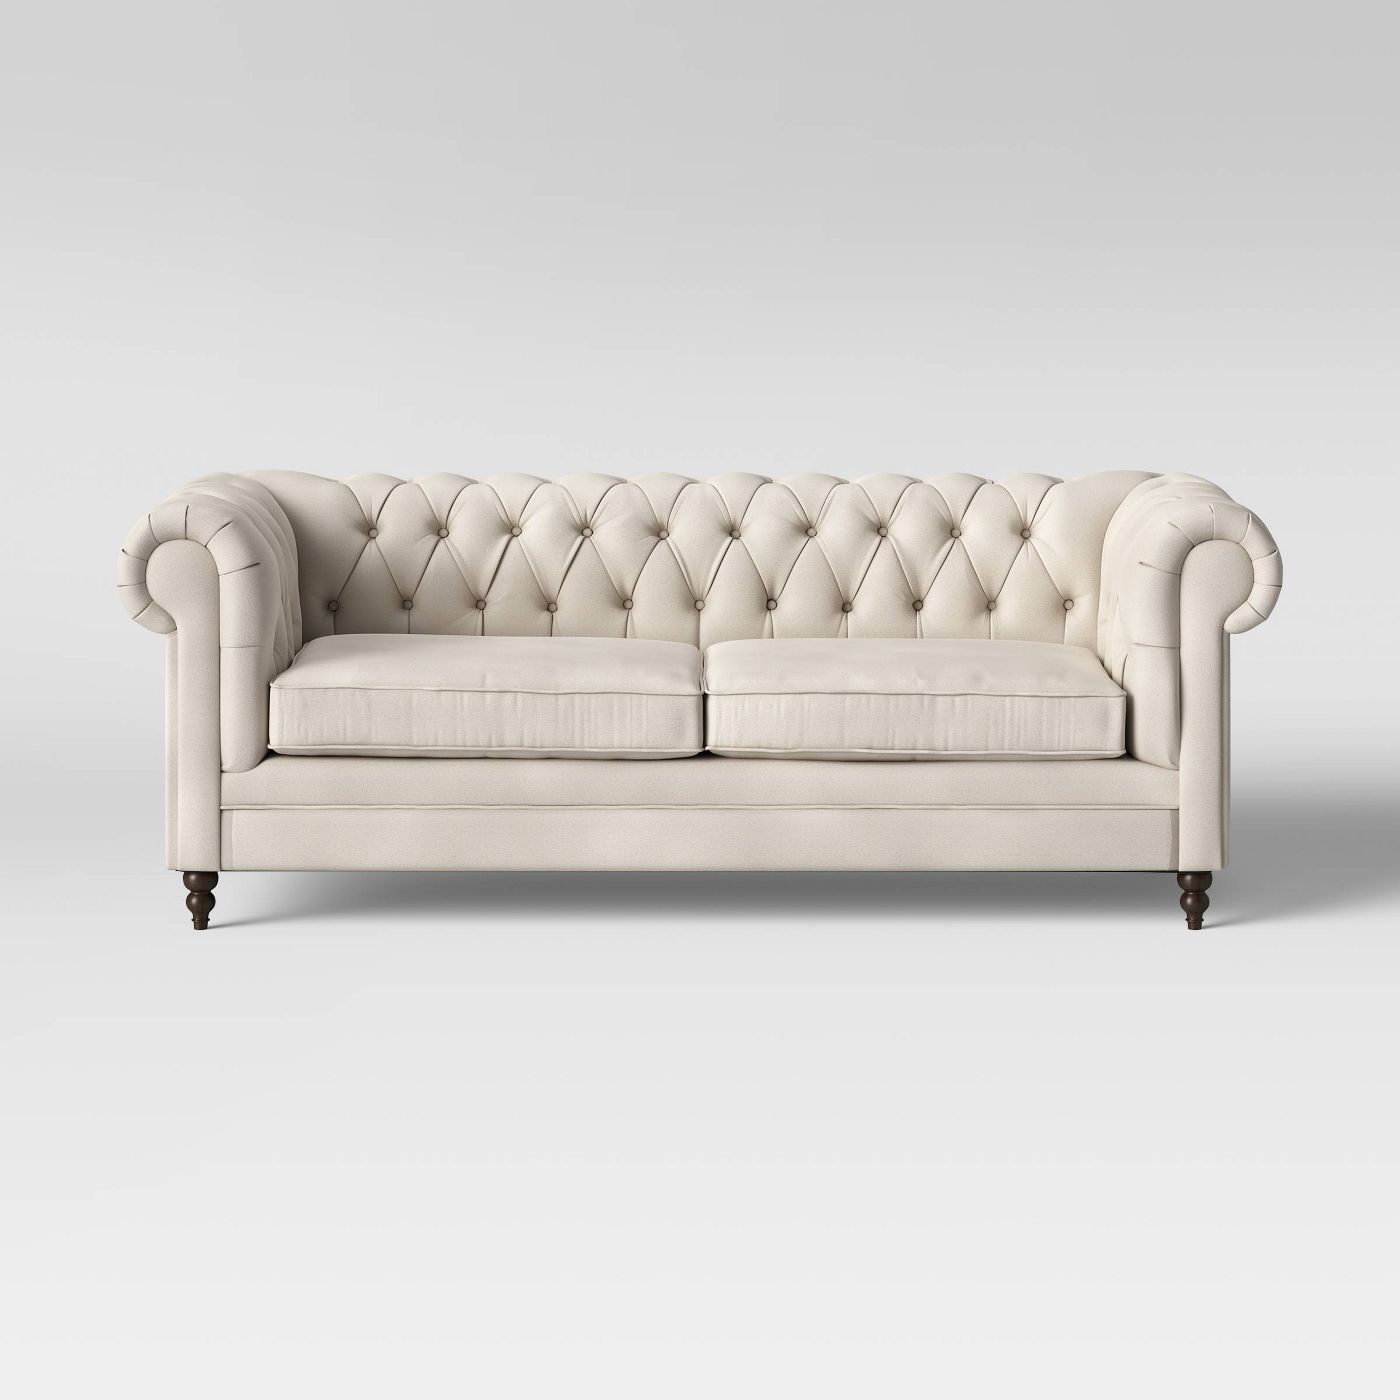 Cream Nailhead Tufted Rolled Arm Sofa